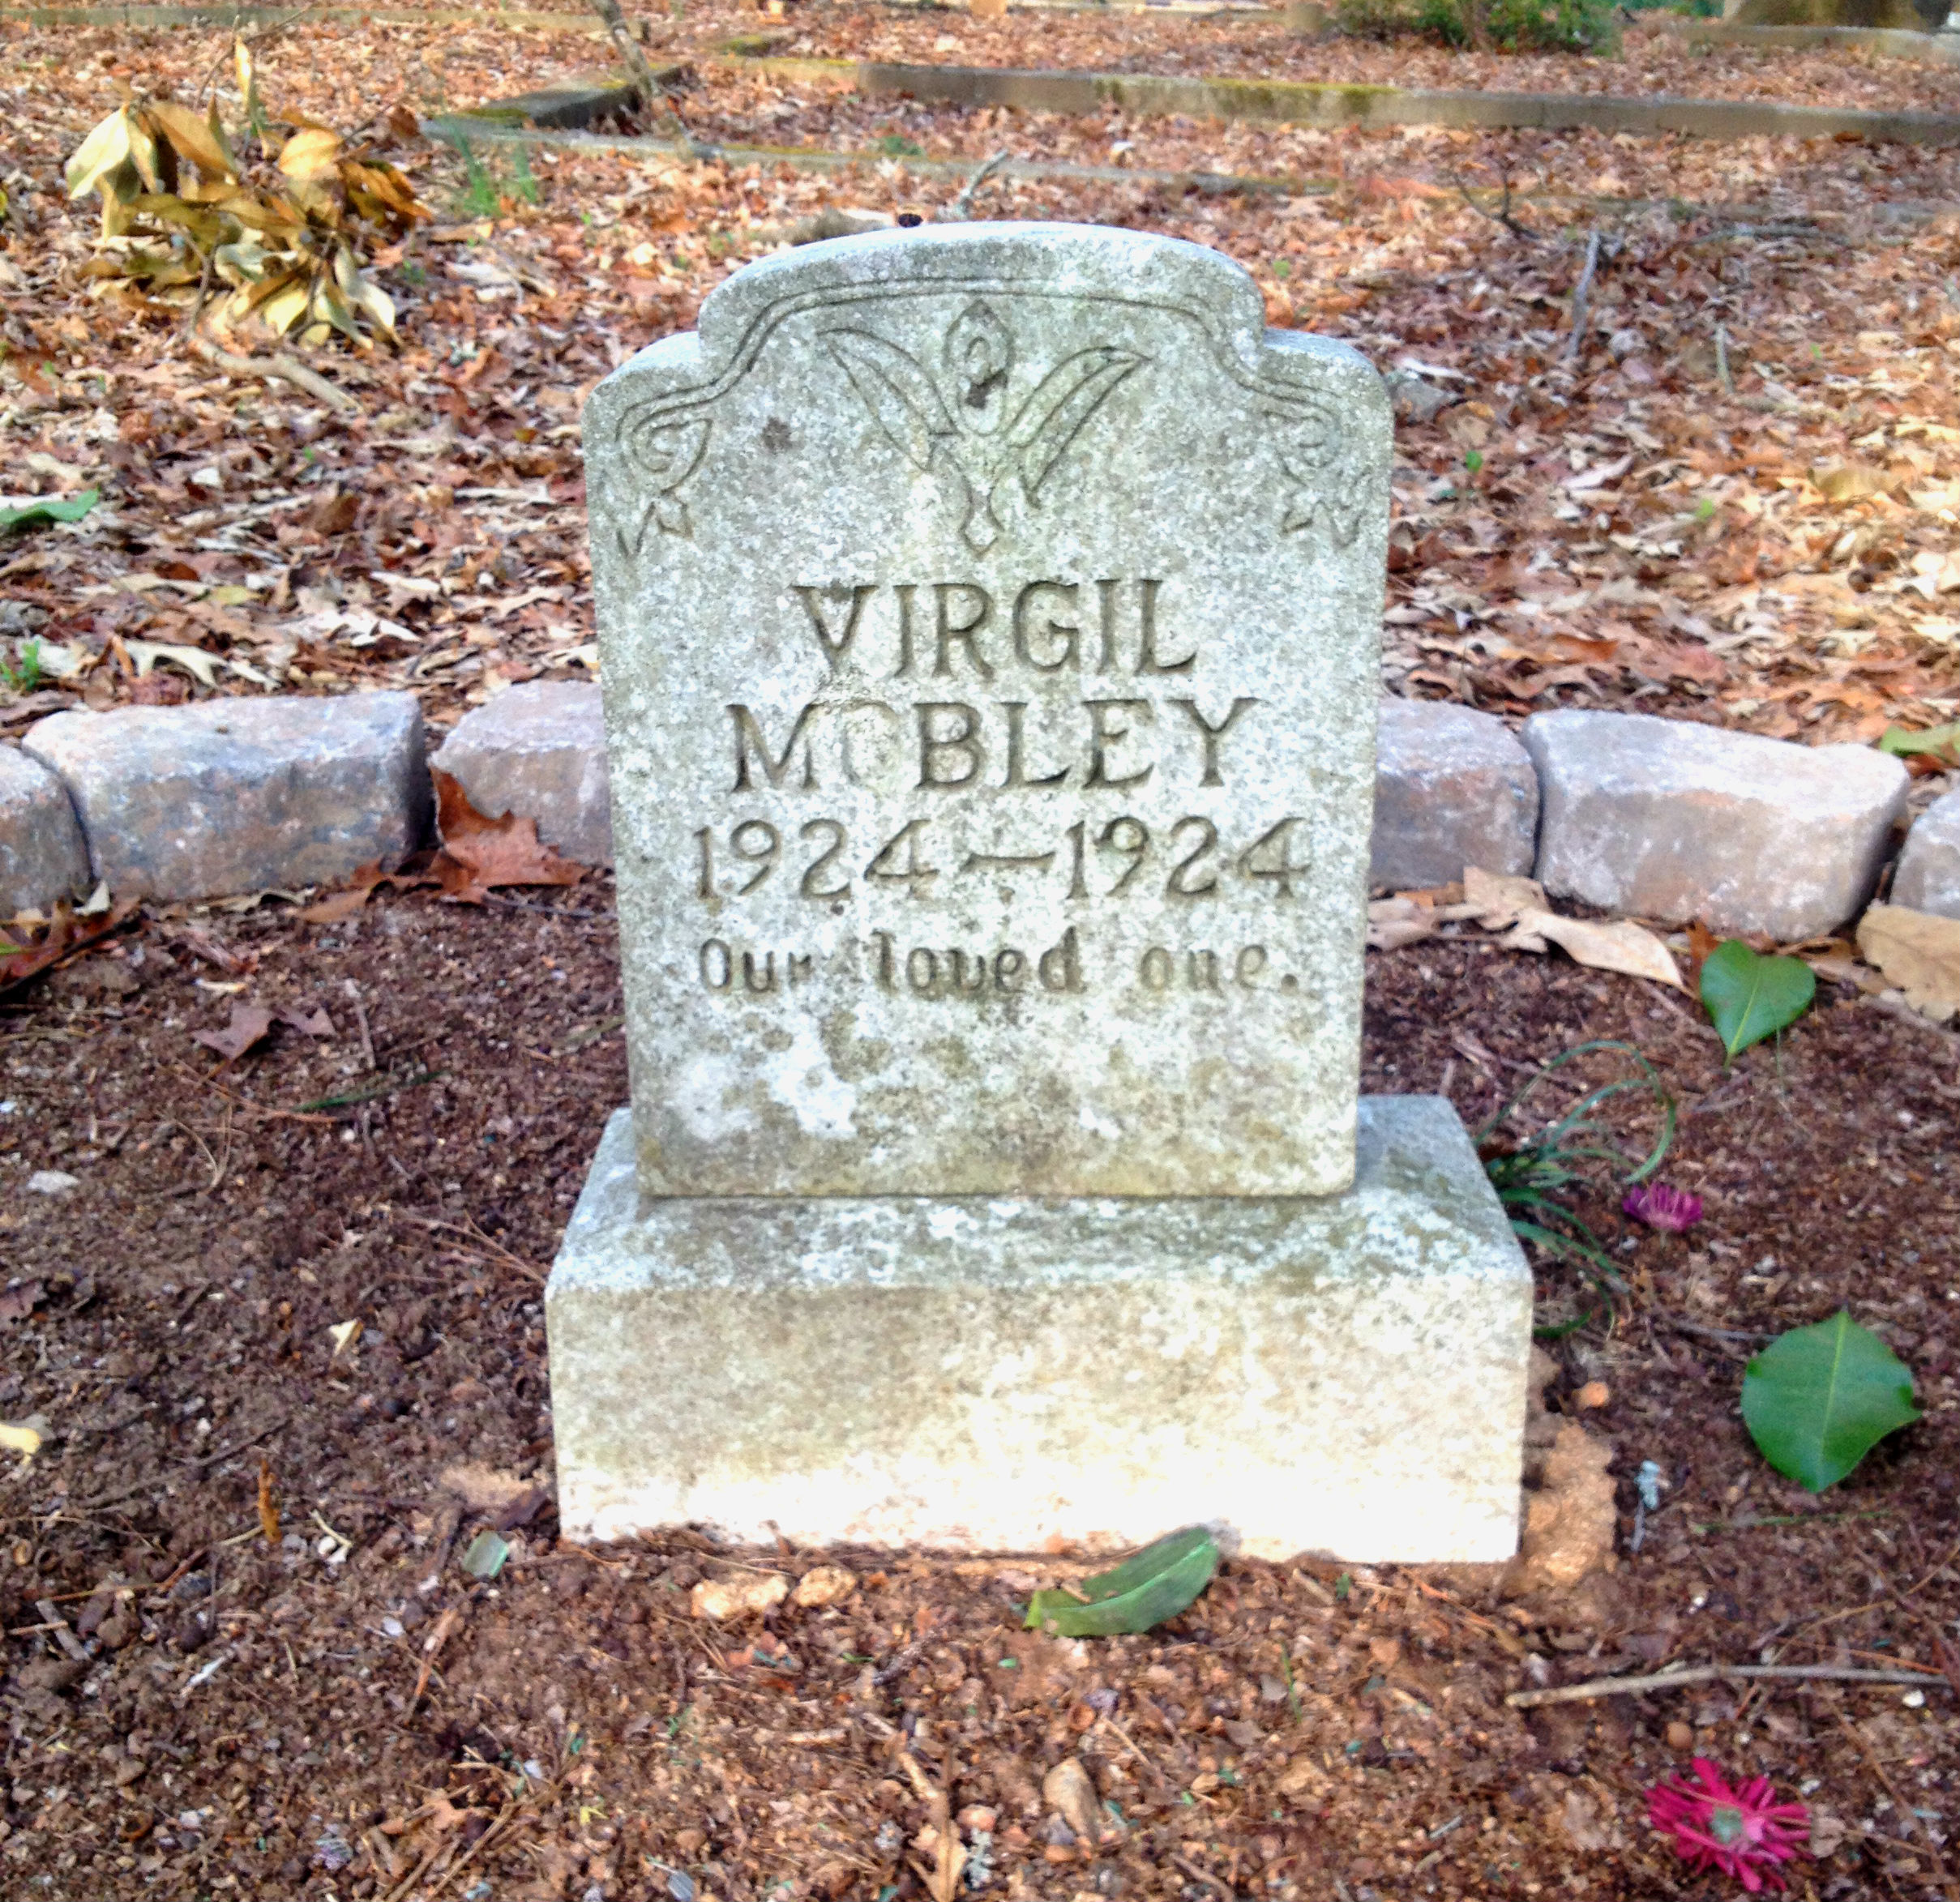 Virgil Mobley Born and Died in 1924 Gravestone in Sylvester Cemetery in East Atlanta - History Atlanta 2014